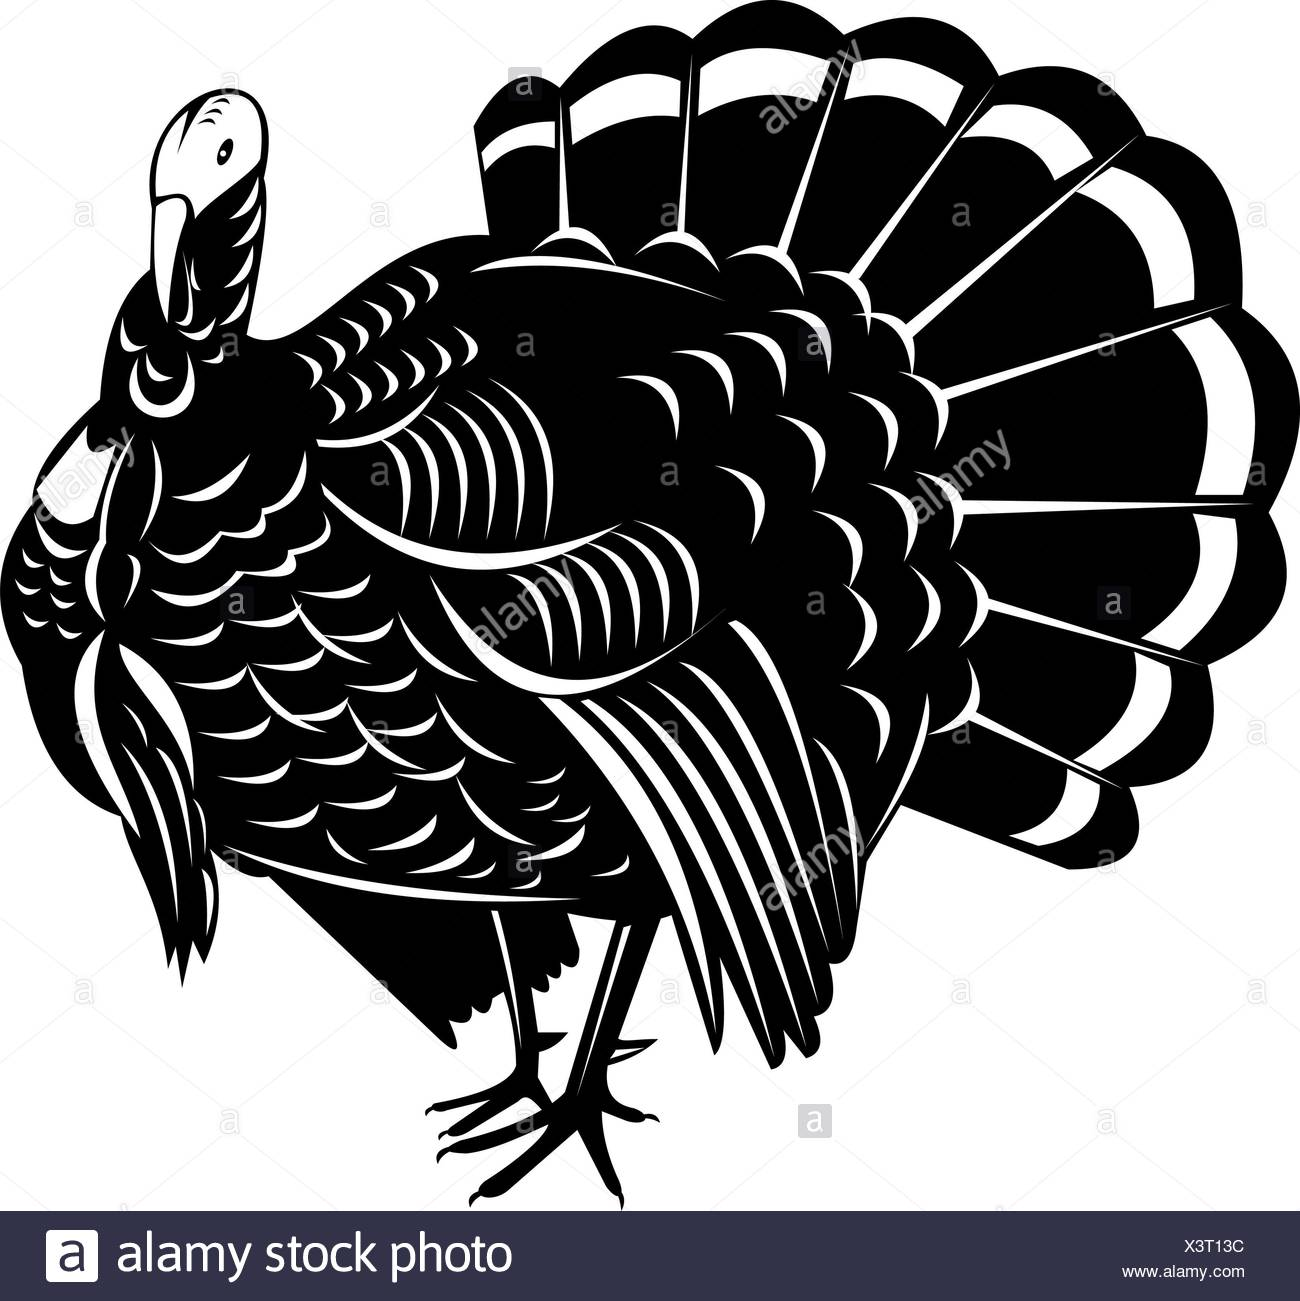 Wild Turkey Black and White Stock Photos & Images - Alamy